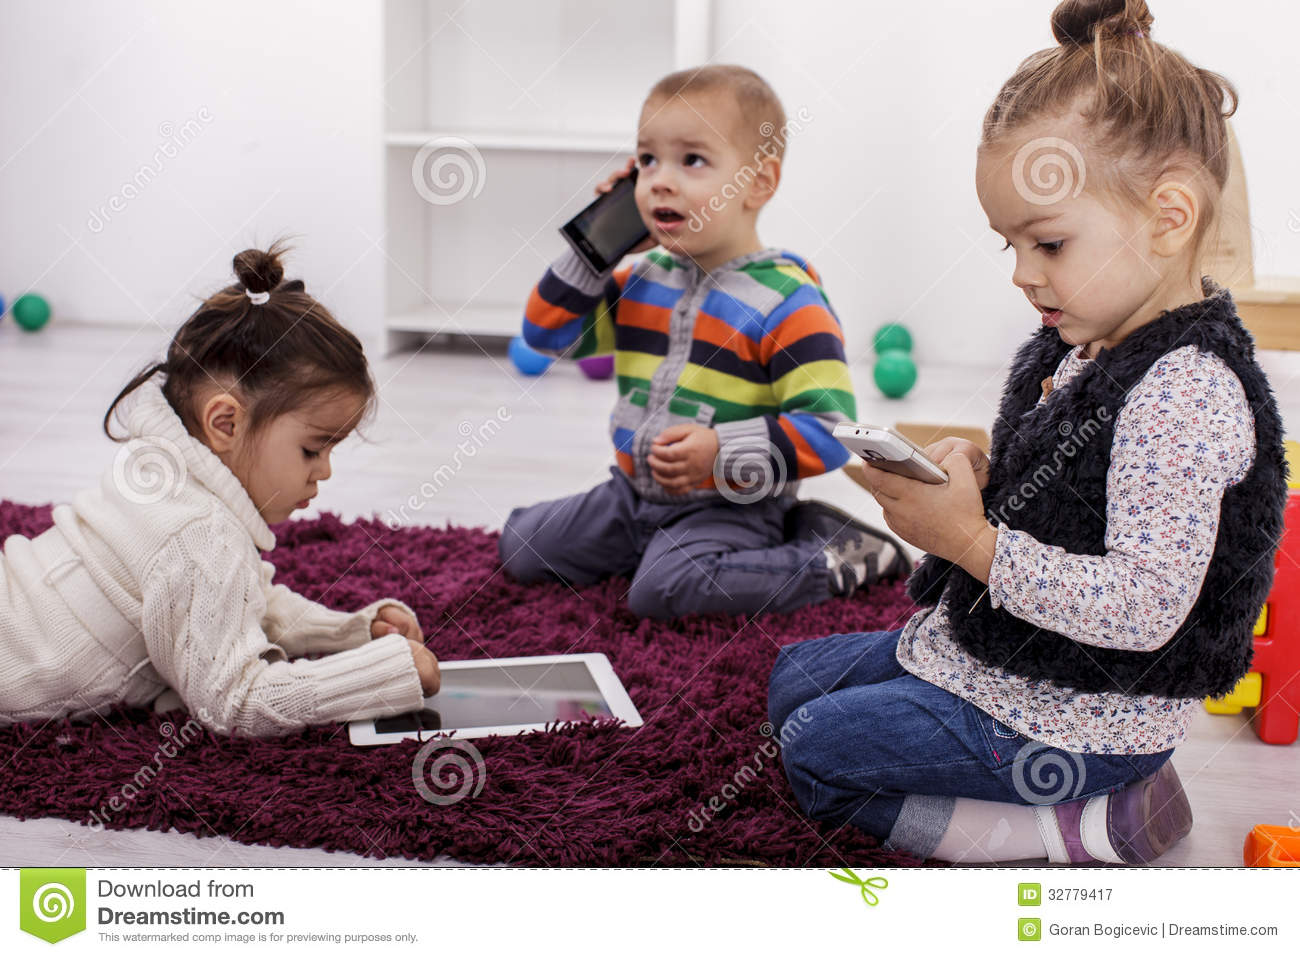 Kids with tablet and phones